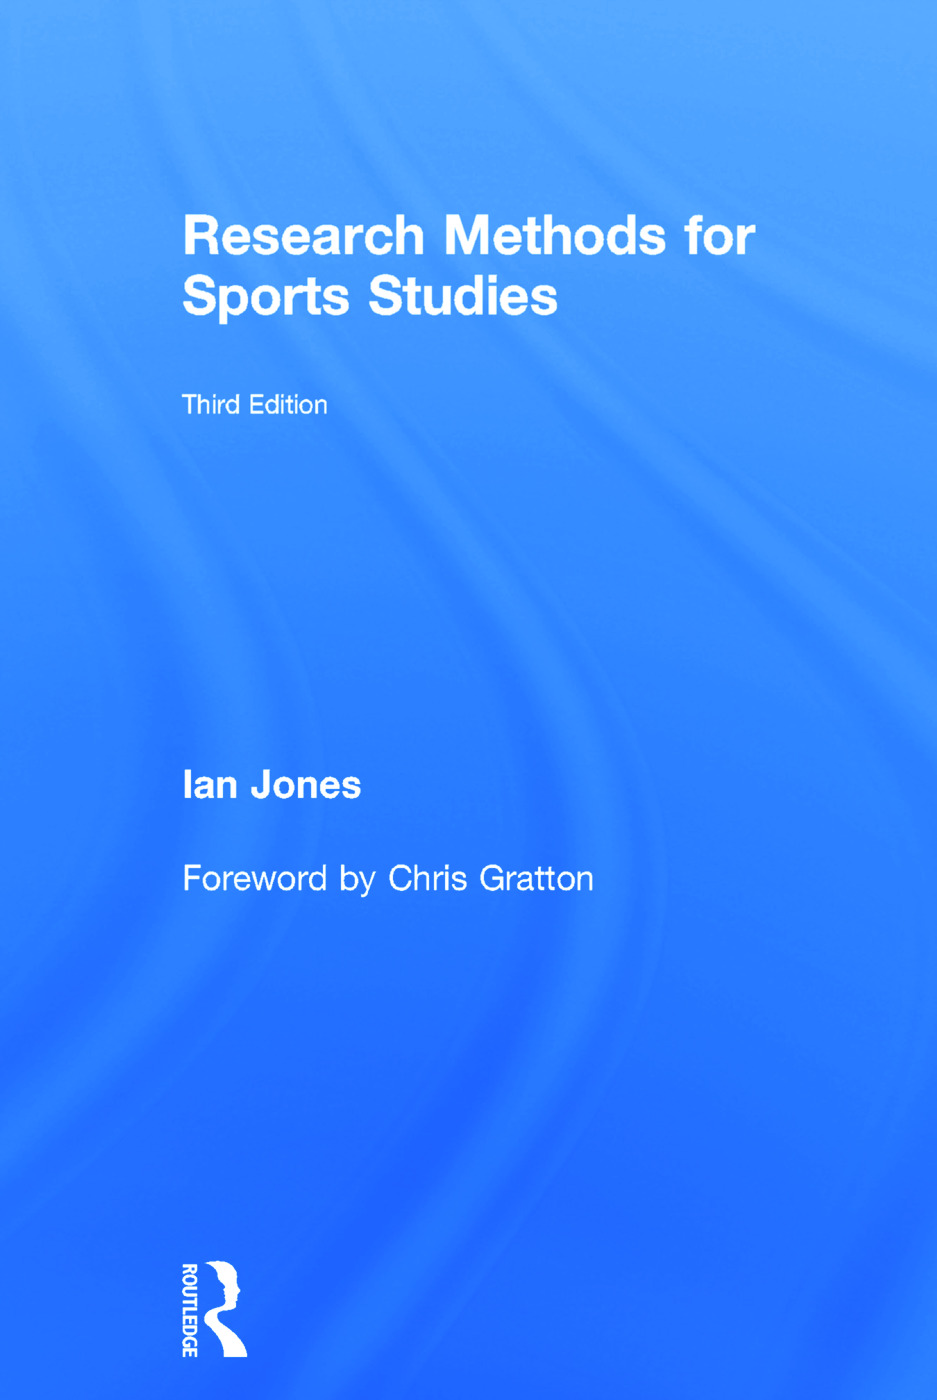 Research Methods for Sports Studies: Third Edition book cover